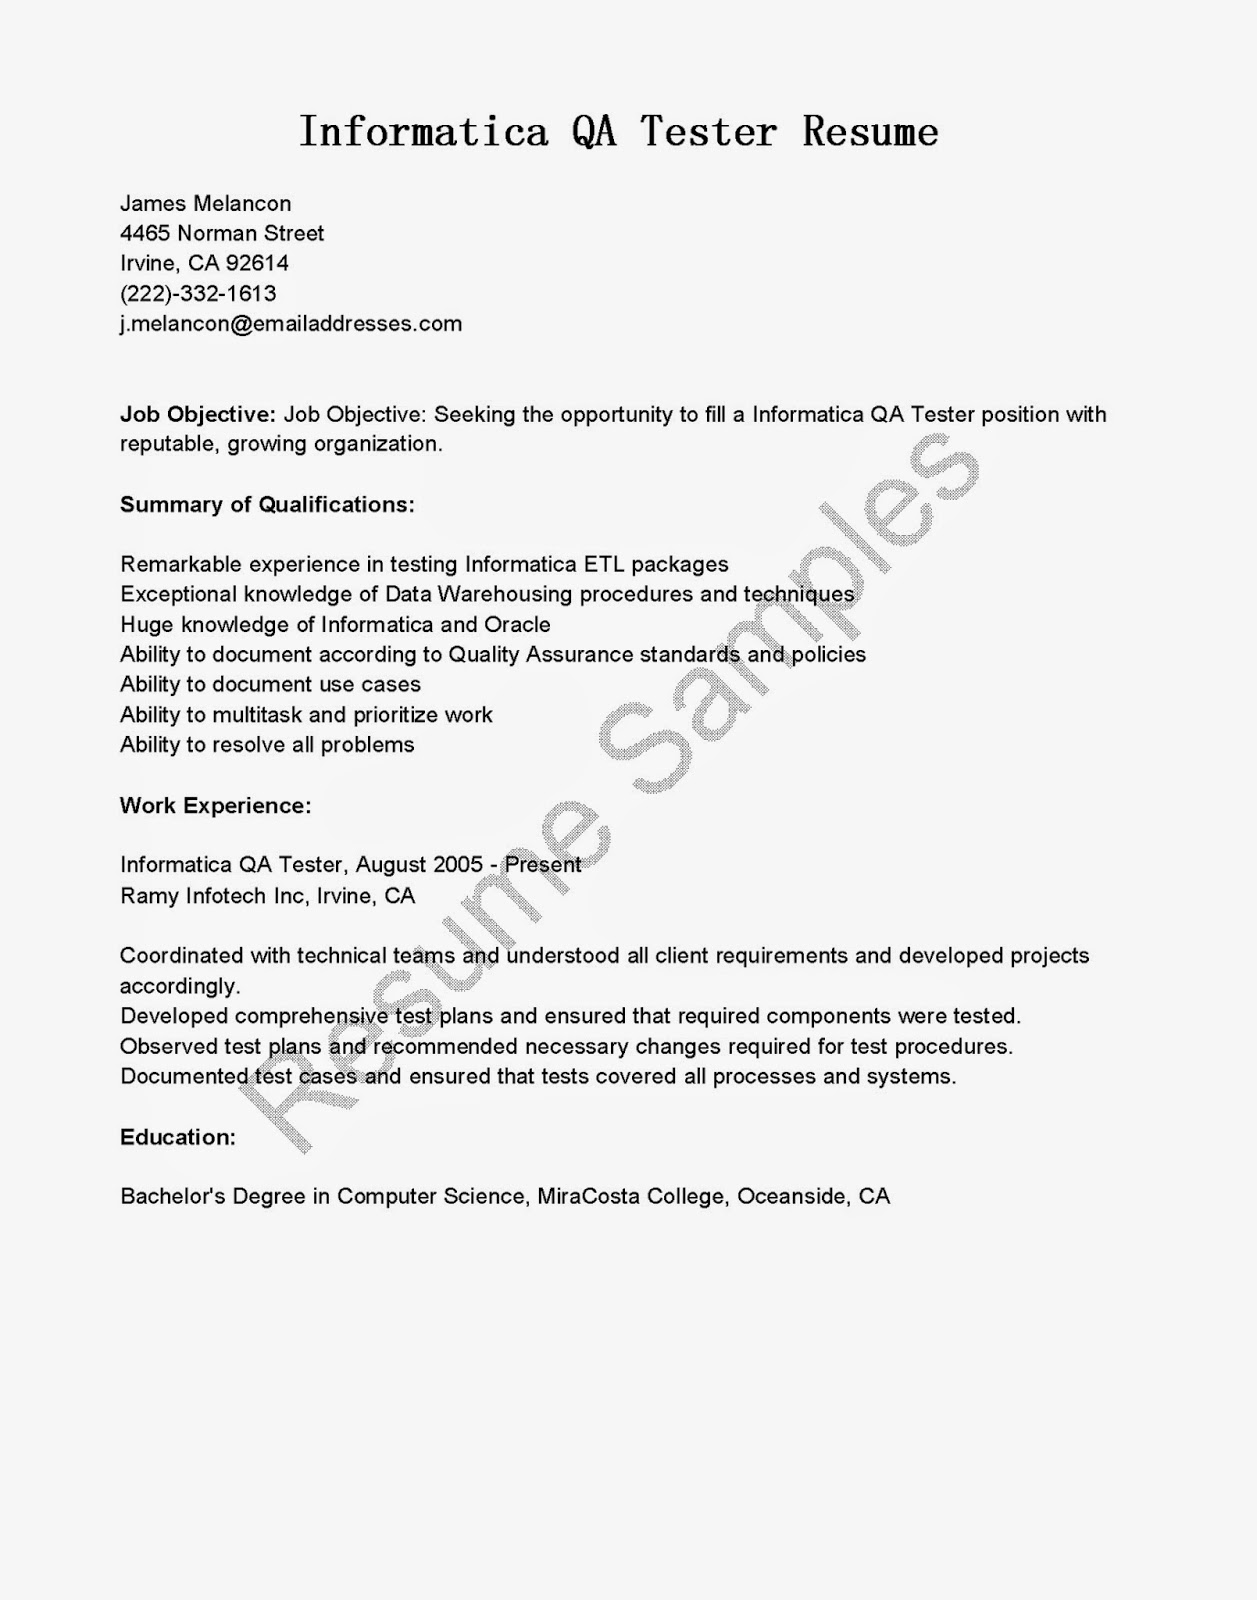 Resume Sample For Qa Tester